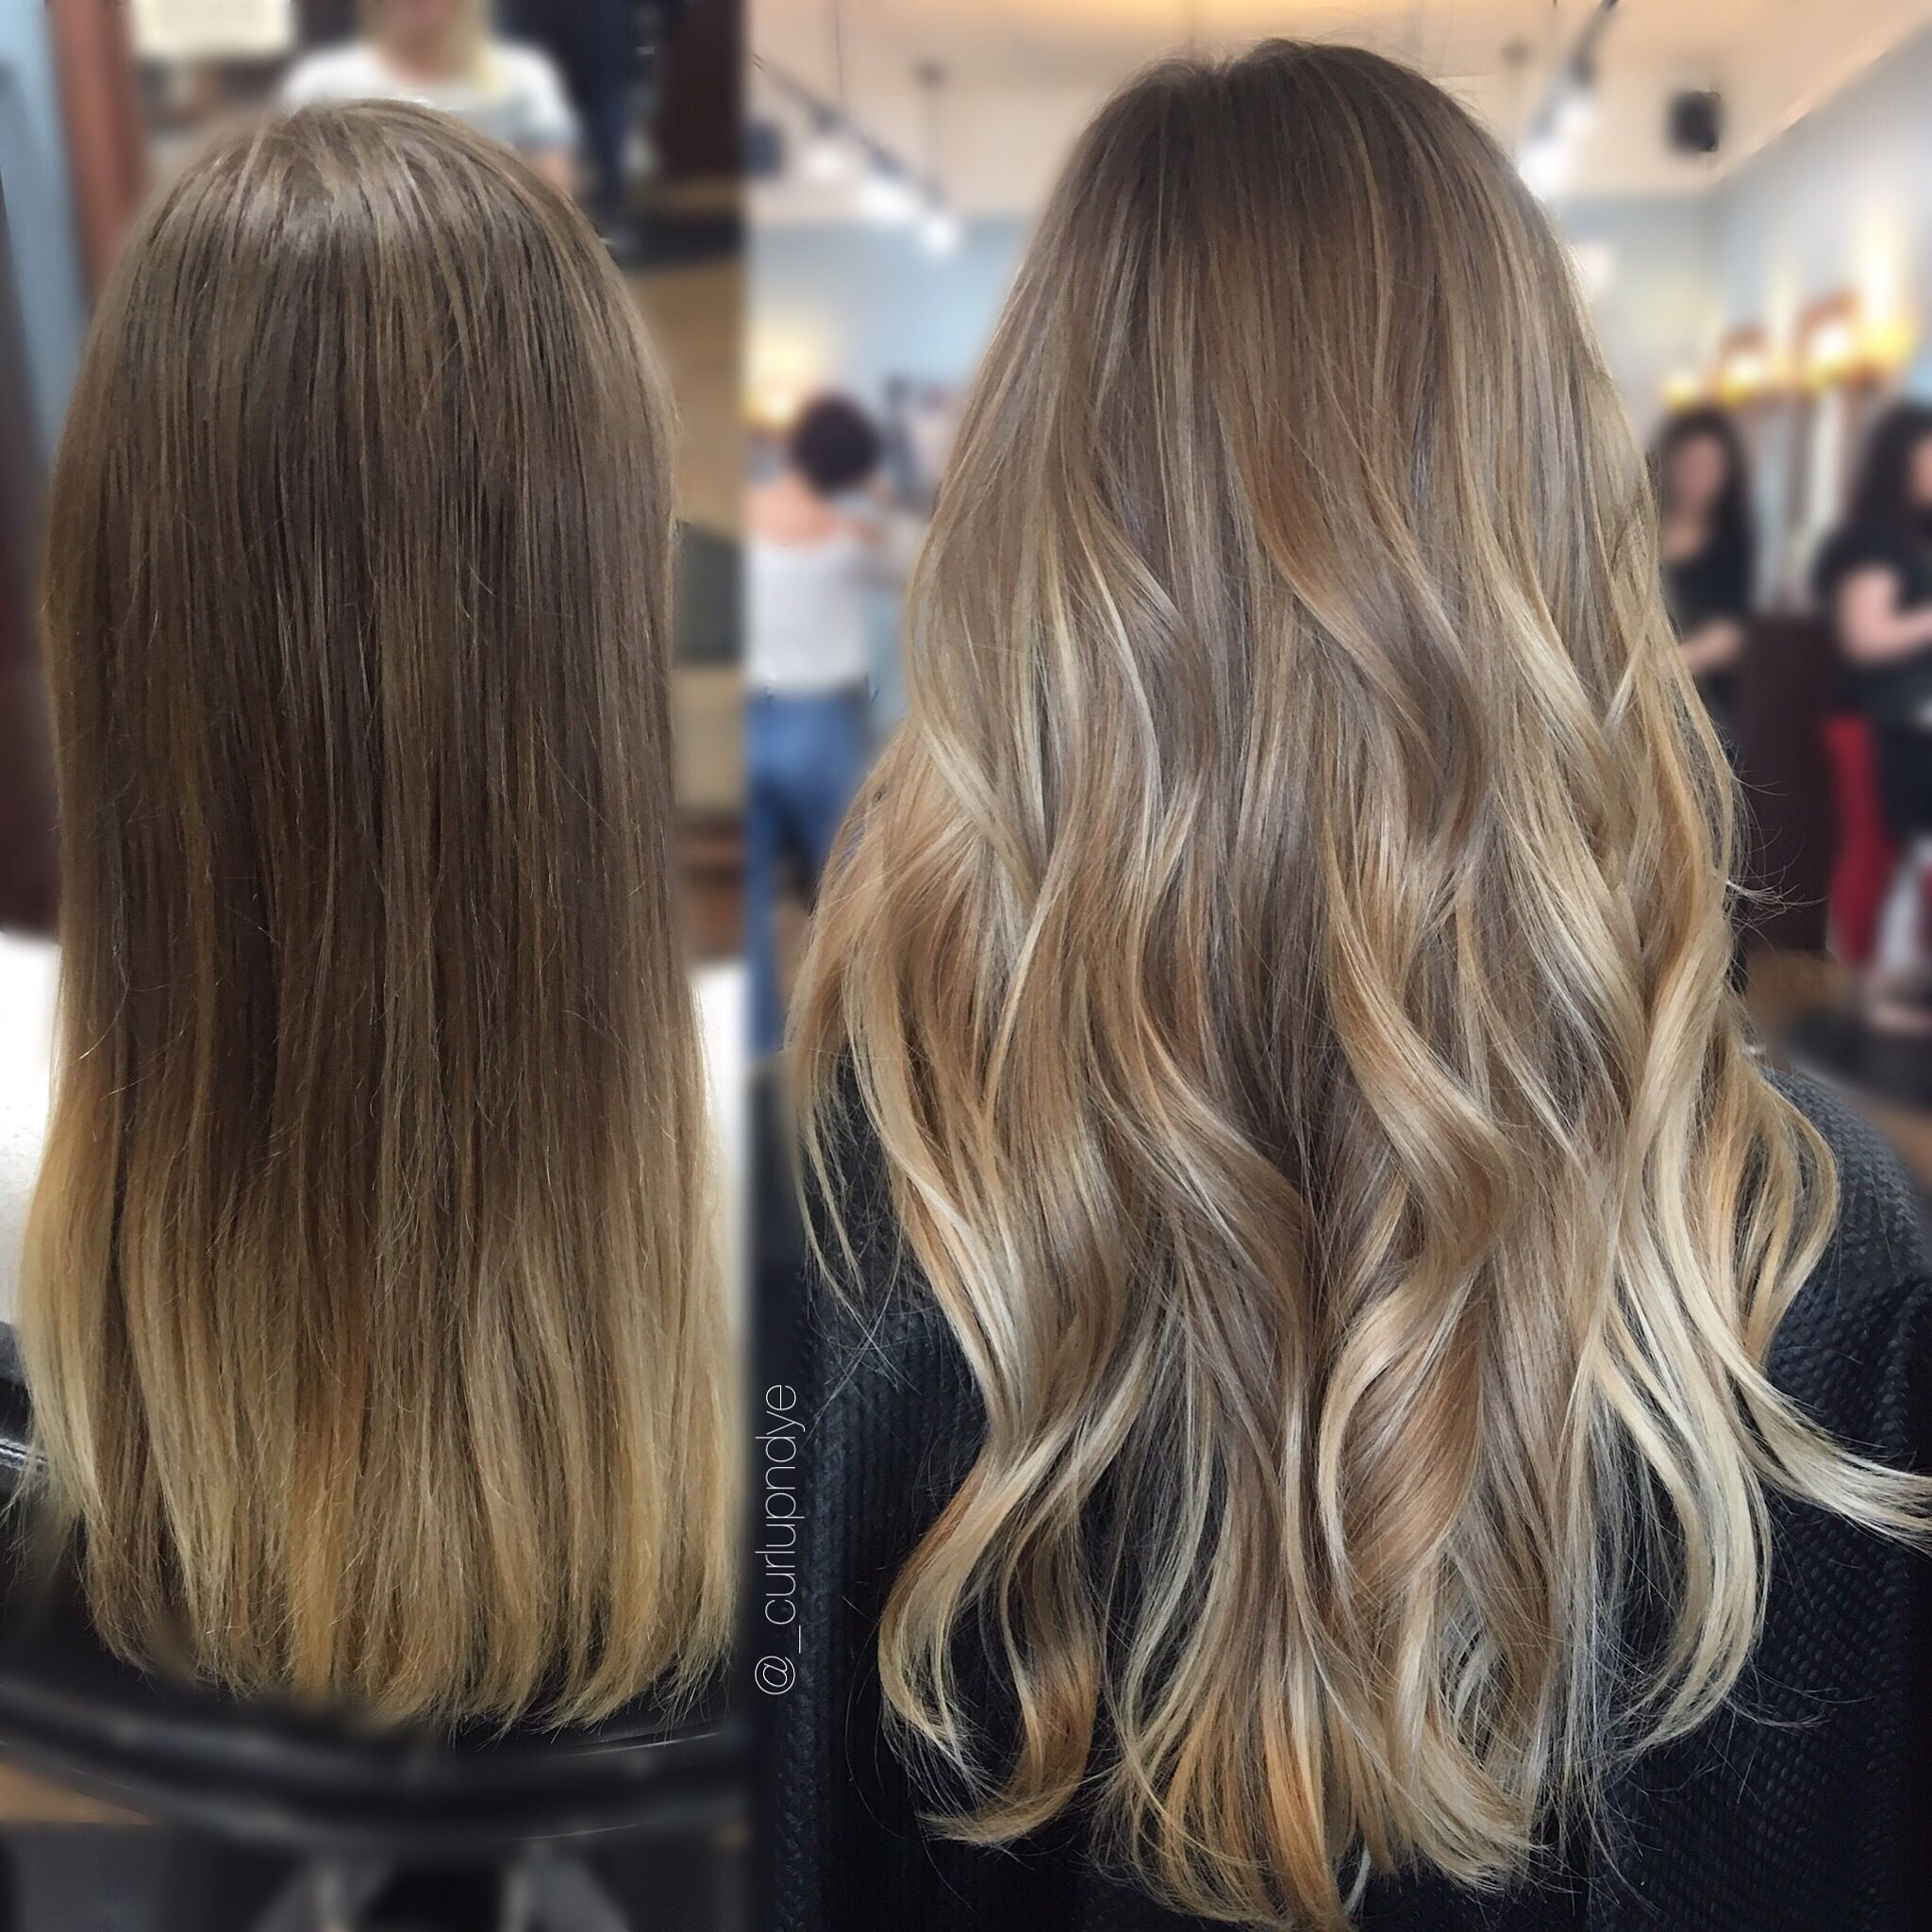 Blonde balayage ombré hairpainting cortes pinterest blonde